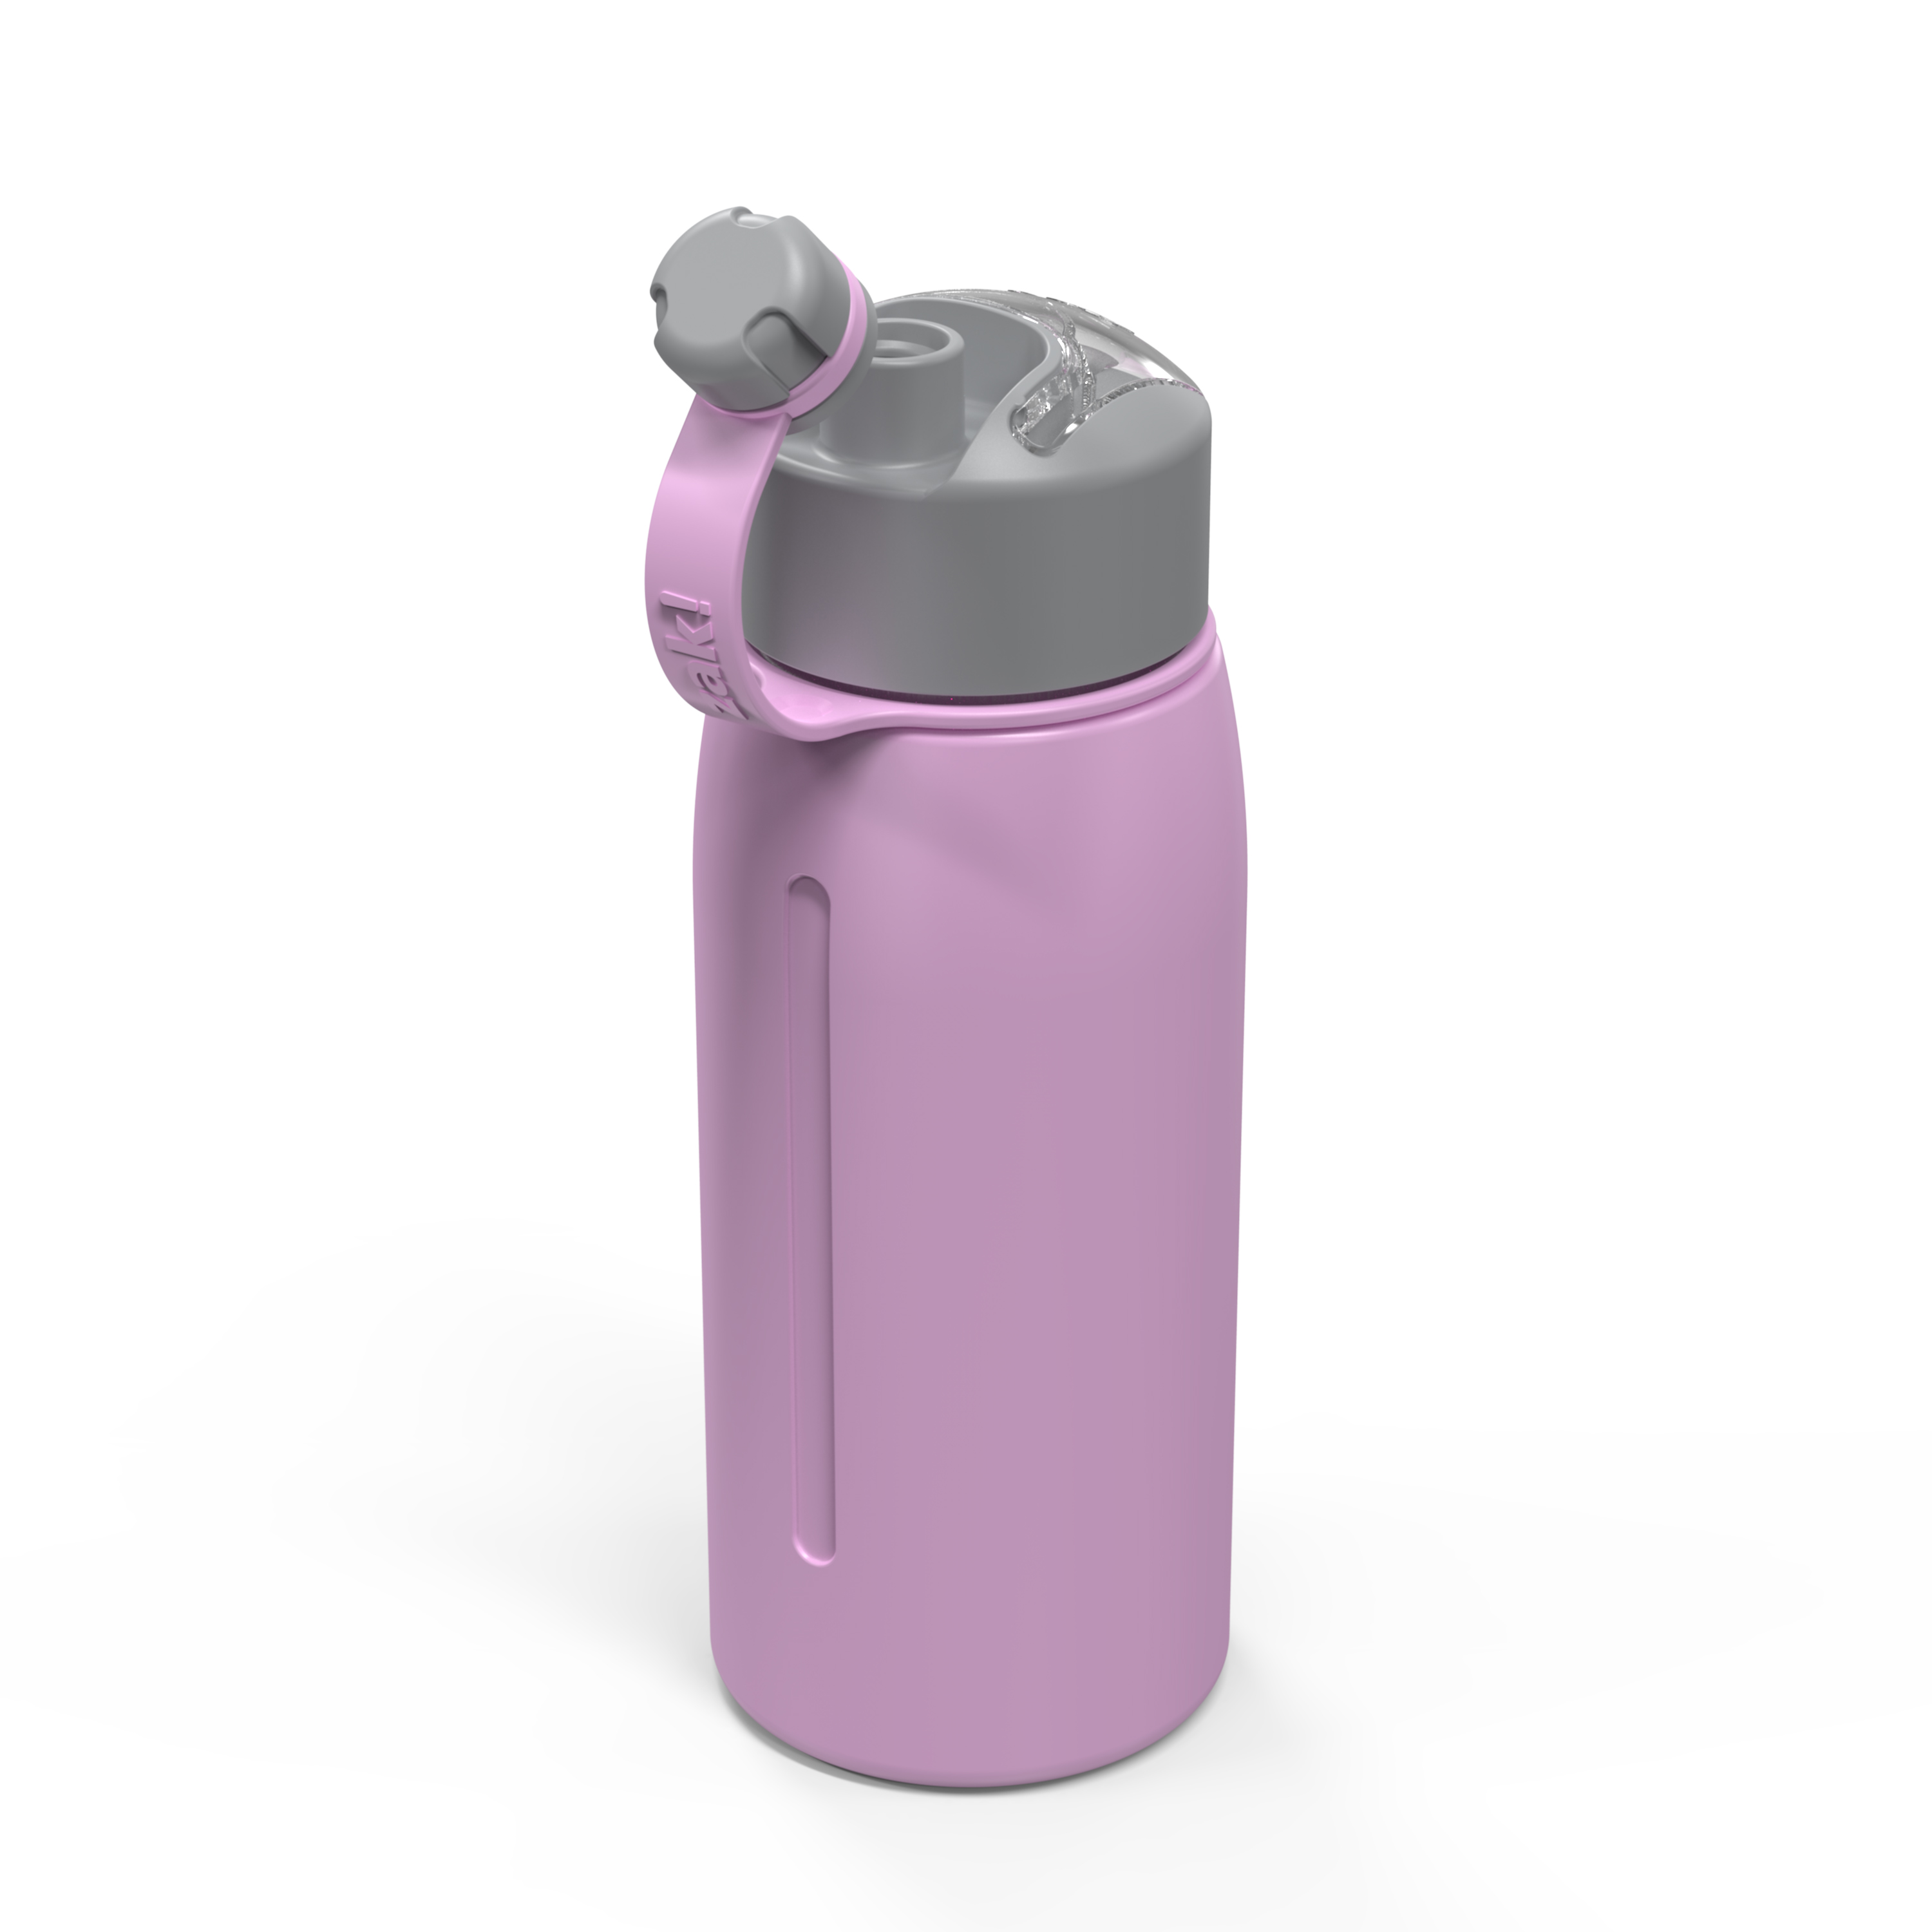 Genesis 24 ounce Vacuum Insulated Stainless Steel Tumbler, Lilac slideshow image 6